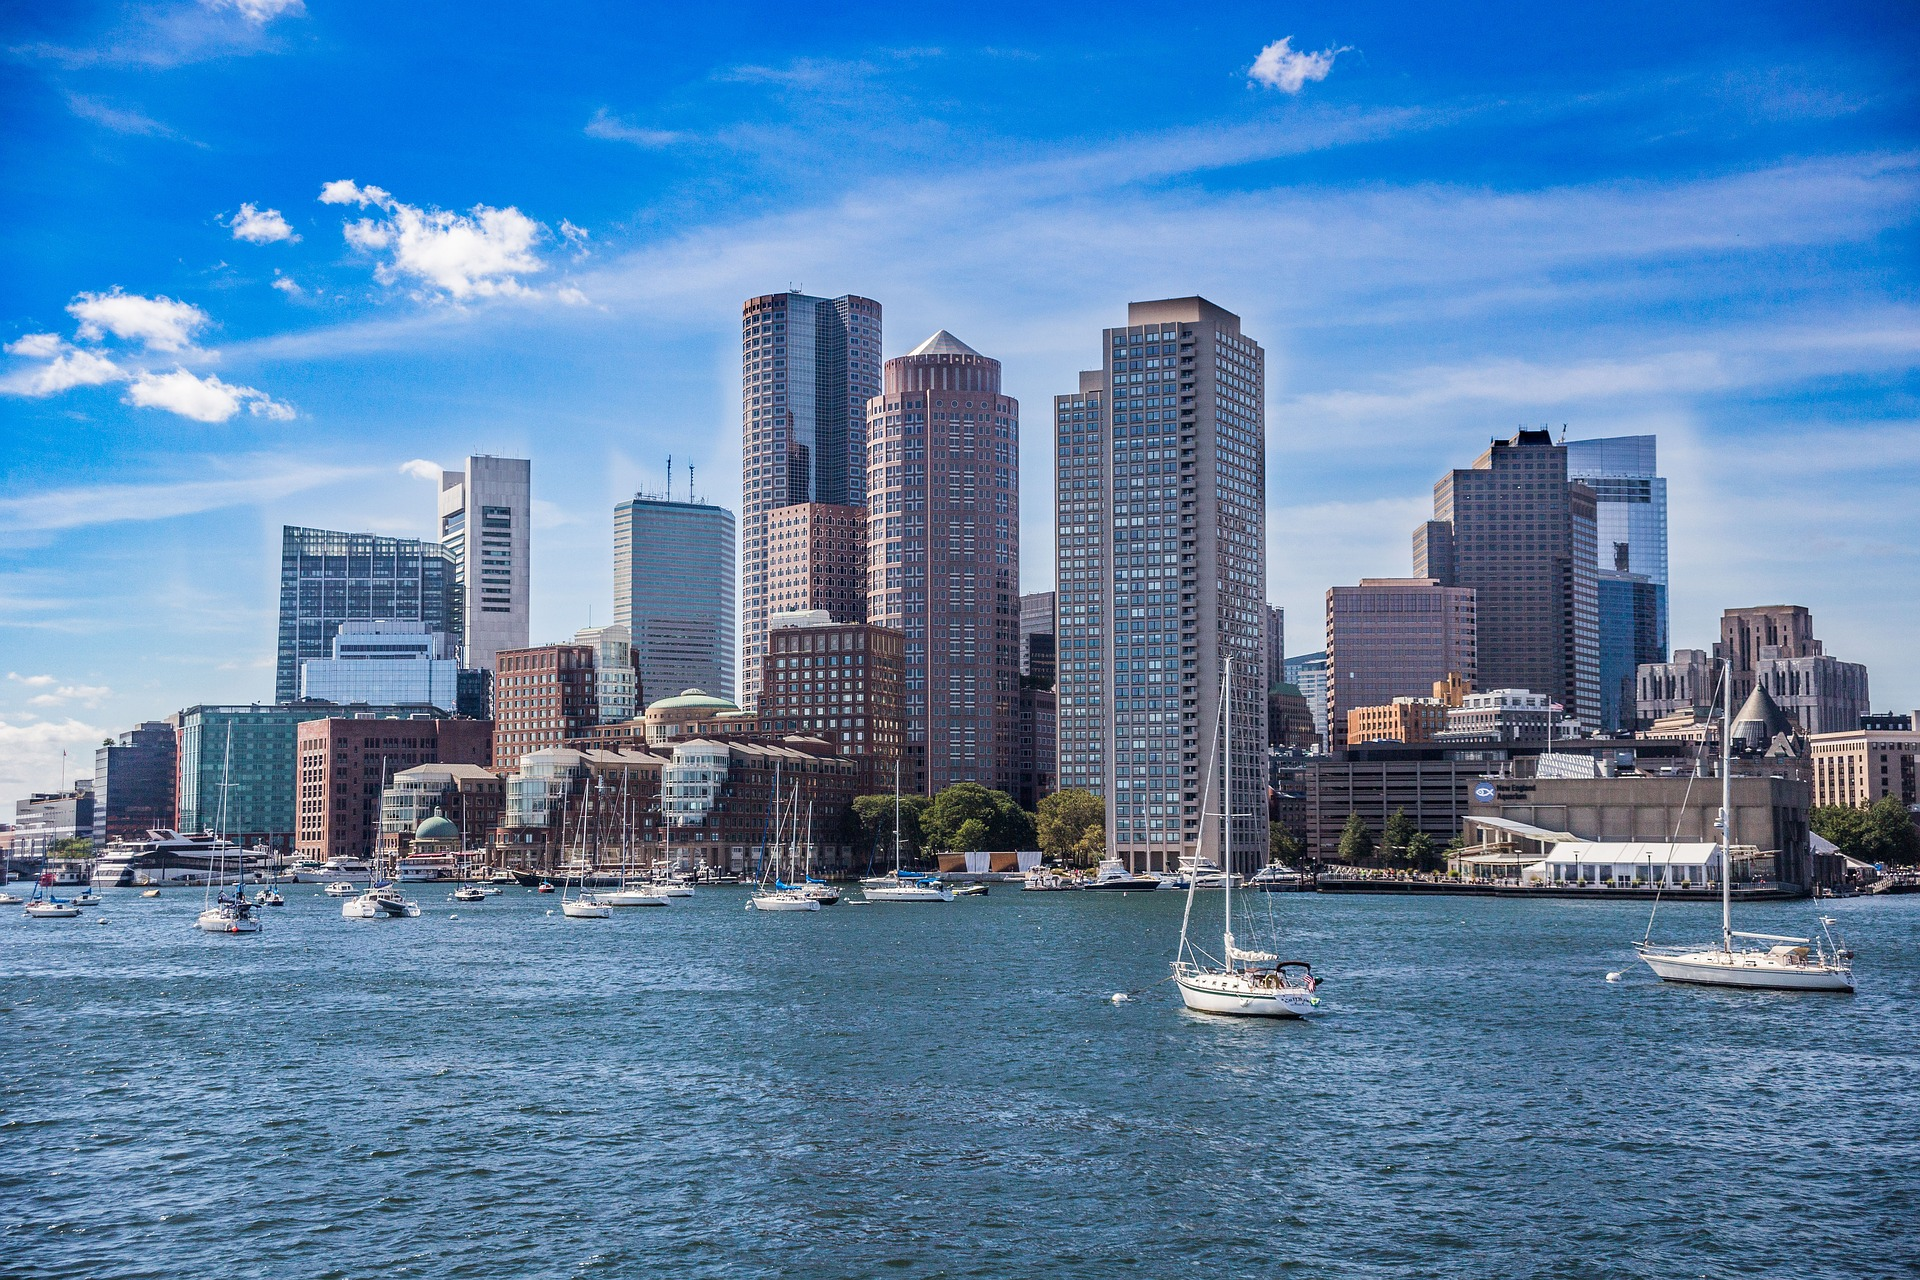 A 4-Day Itinerary to Boston